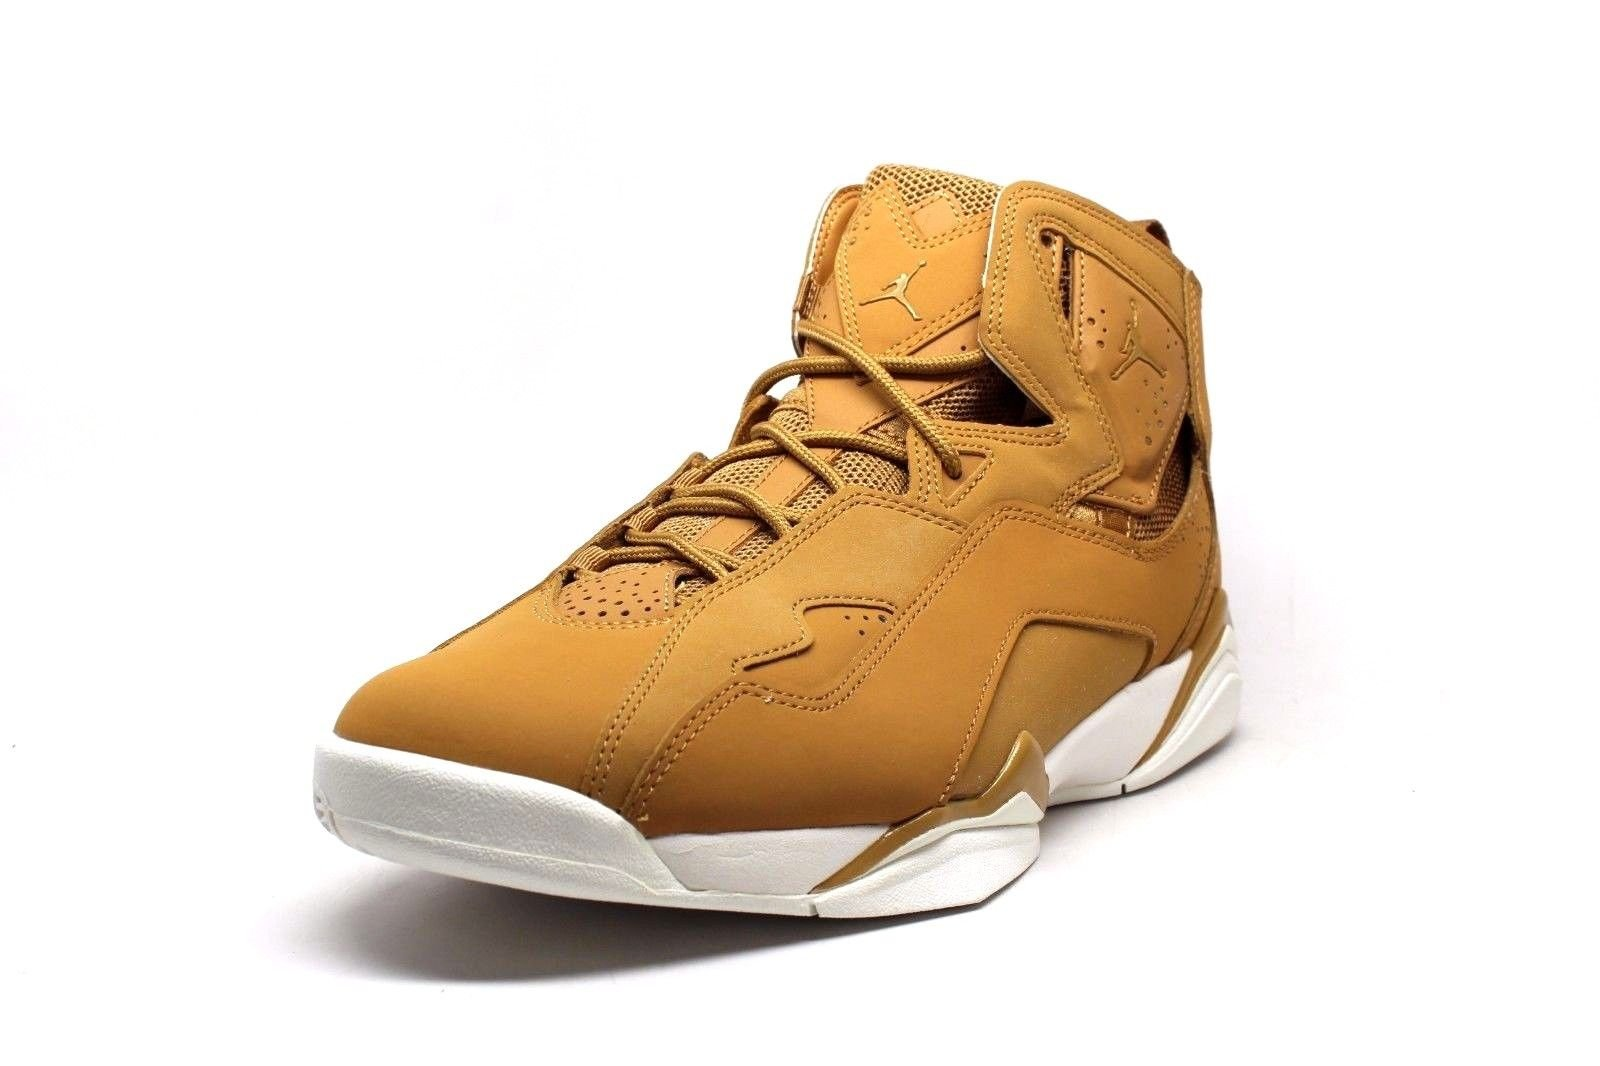 Mens Air Jordan True Flight Golden Harvest Wheat White 342964-725